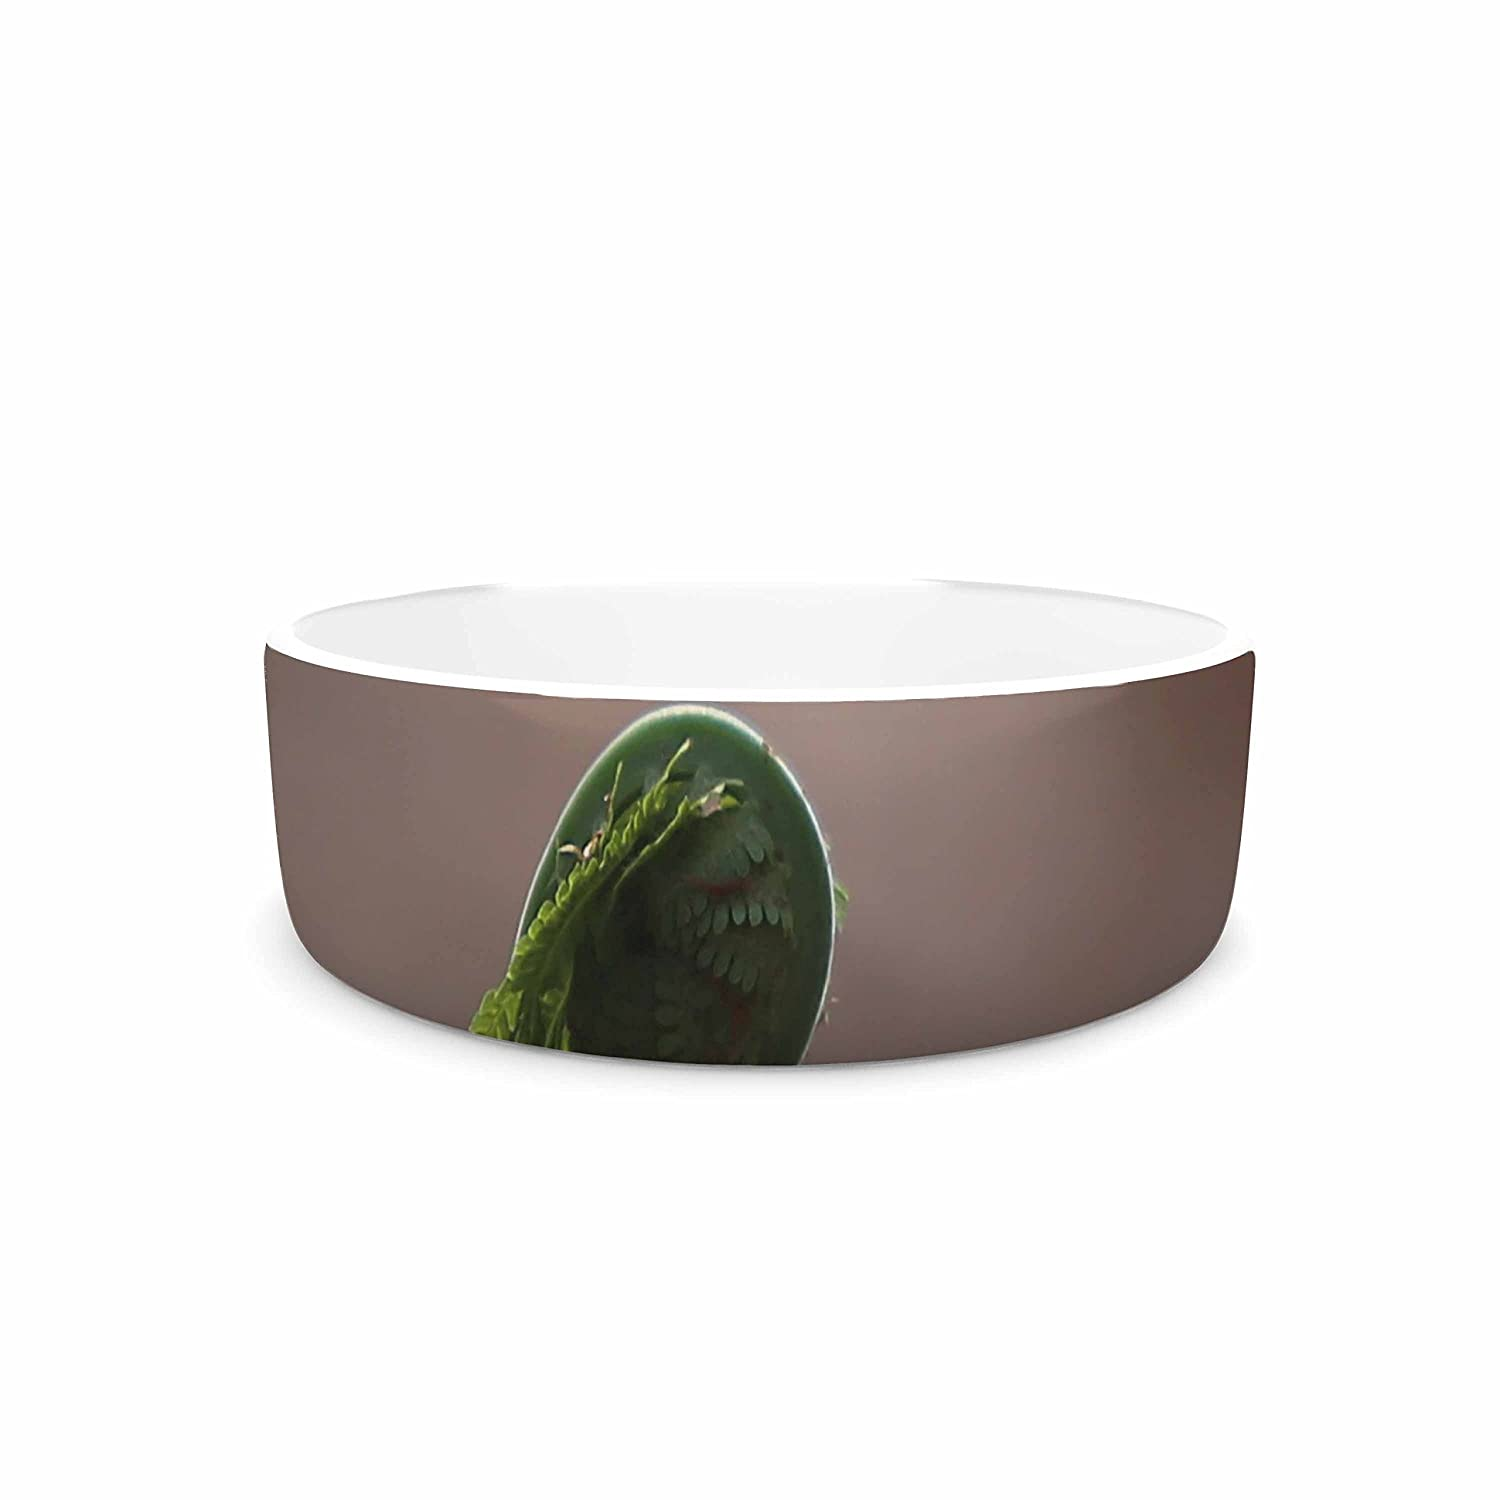 7\ KESS InHouse Angie Turner Fern Top -Green Nature Pet Bowl, 7